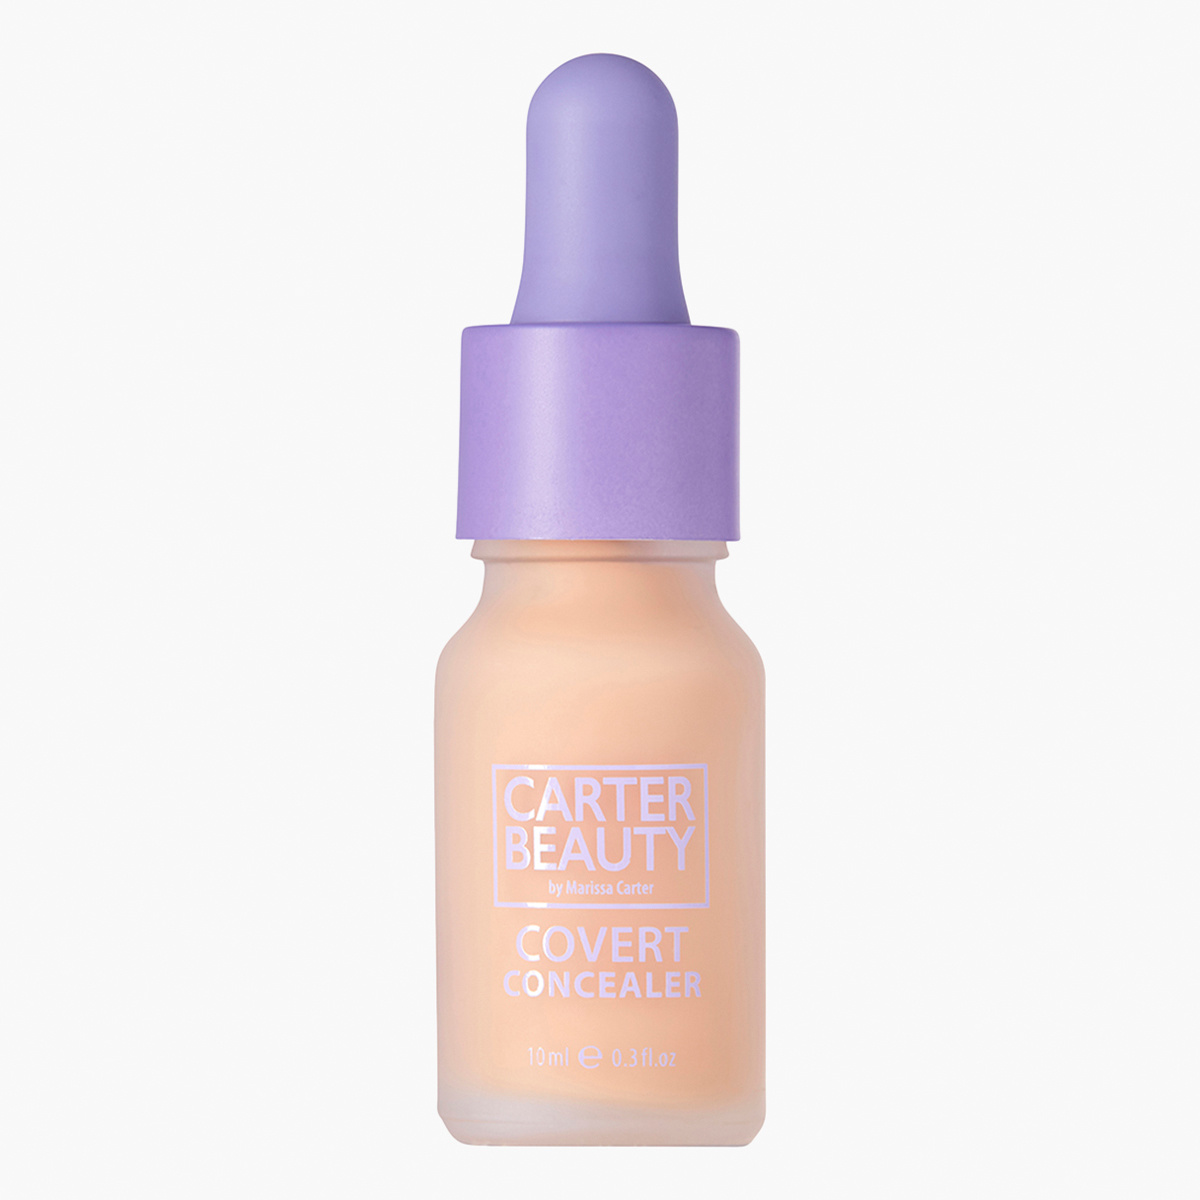 Carter Beauty Covert Concealer - 10 ml